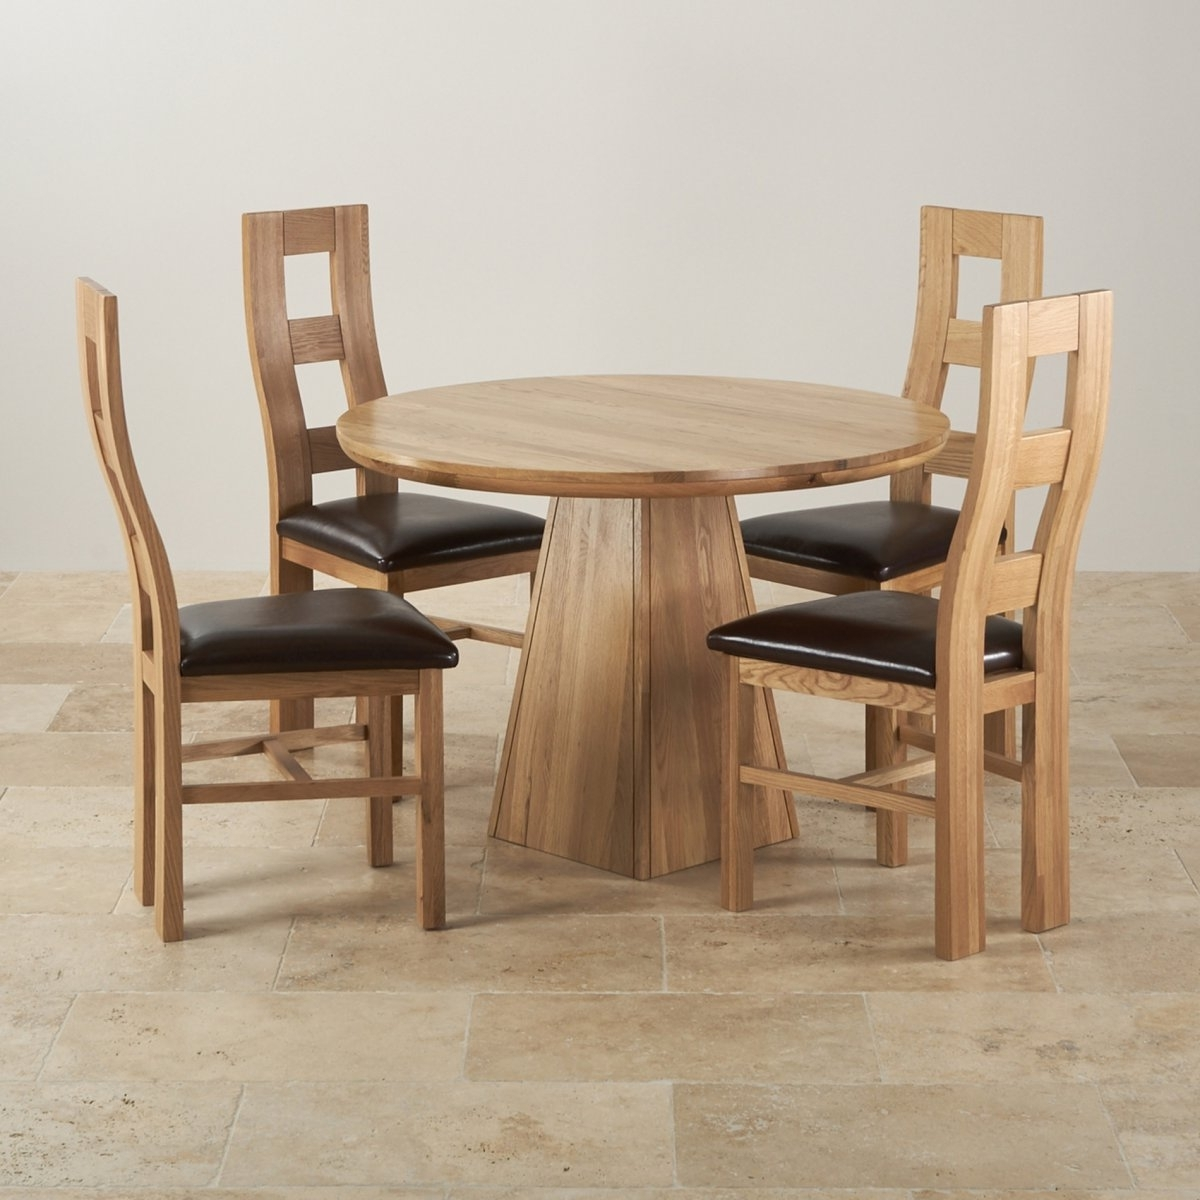 Round Oak Dining Tables And Chairs Throughout Favorite Provence Solid Oak Dining Set 3Ft 7Quot; Table With 4 Chairs, Dining (View 20 of 25)